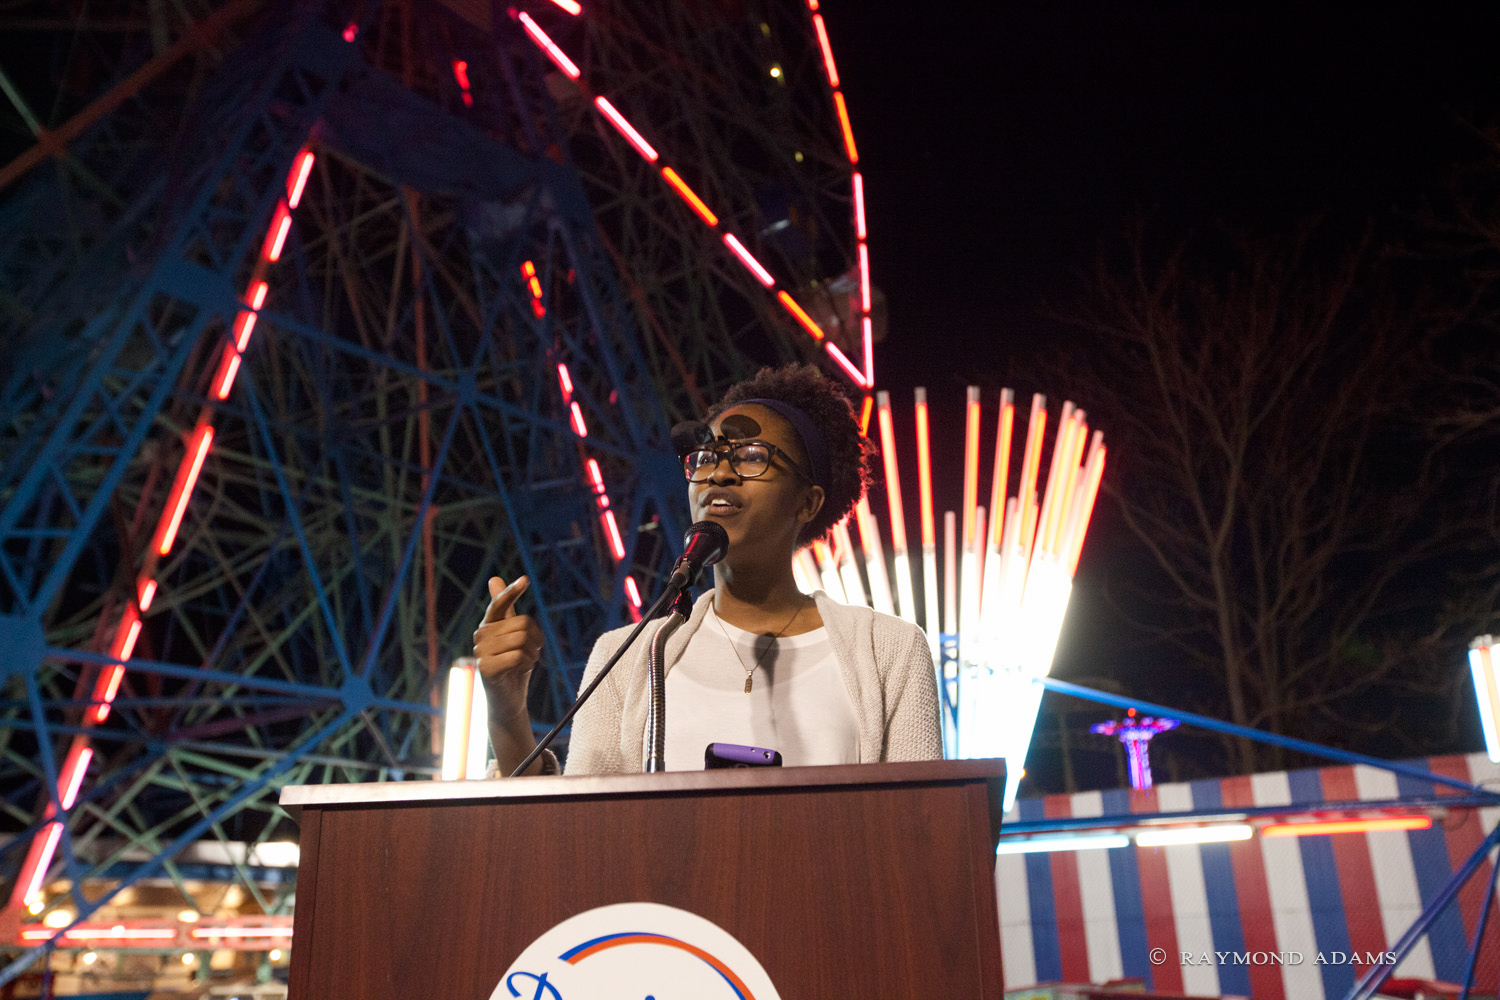 Deutch_Maya Sanders Reads at Wonder Wheel May 2015.jpeg